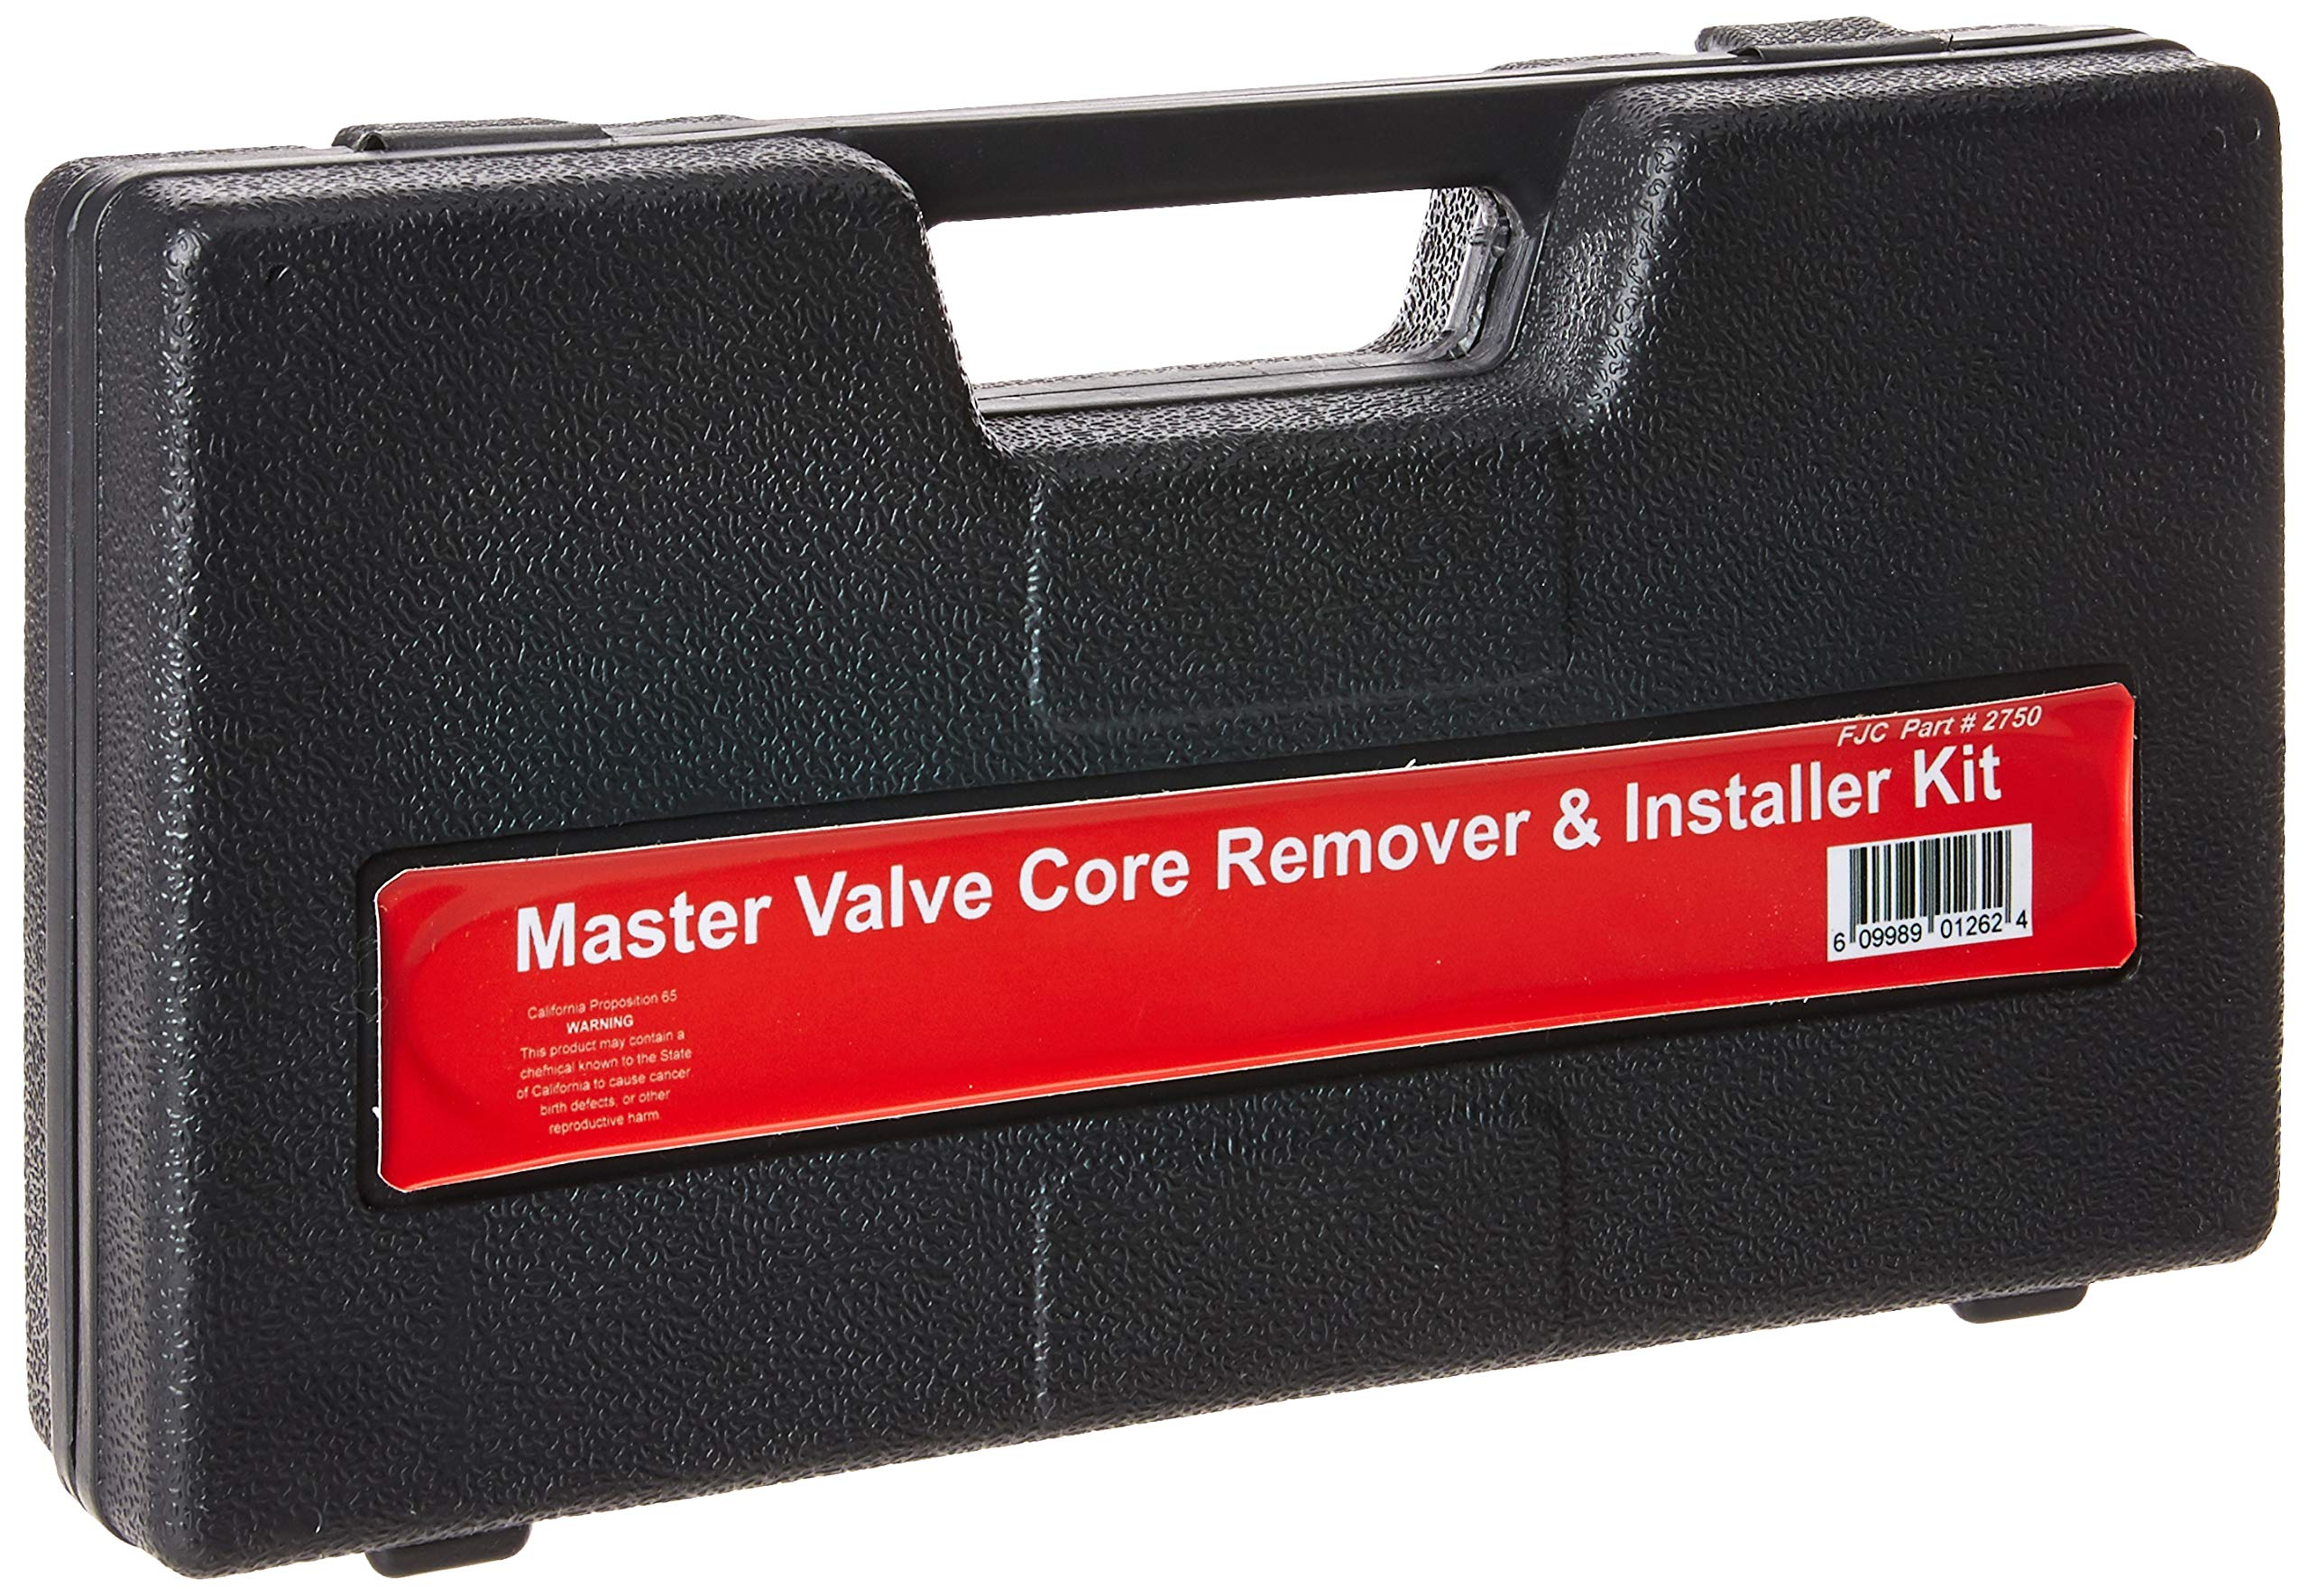 FJC 2750 Master Valve Core Remover and Installer Kit by FJC